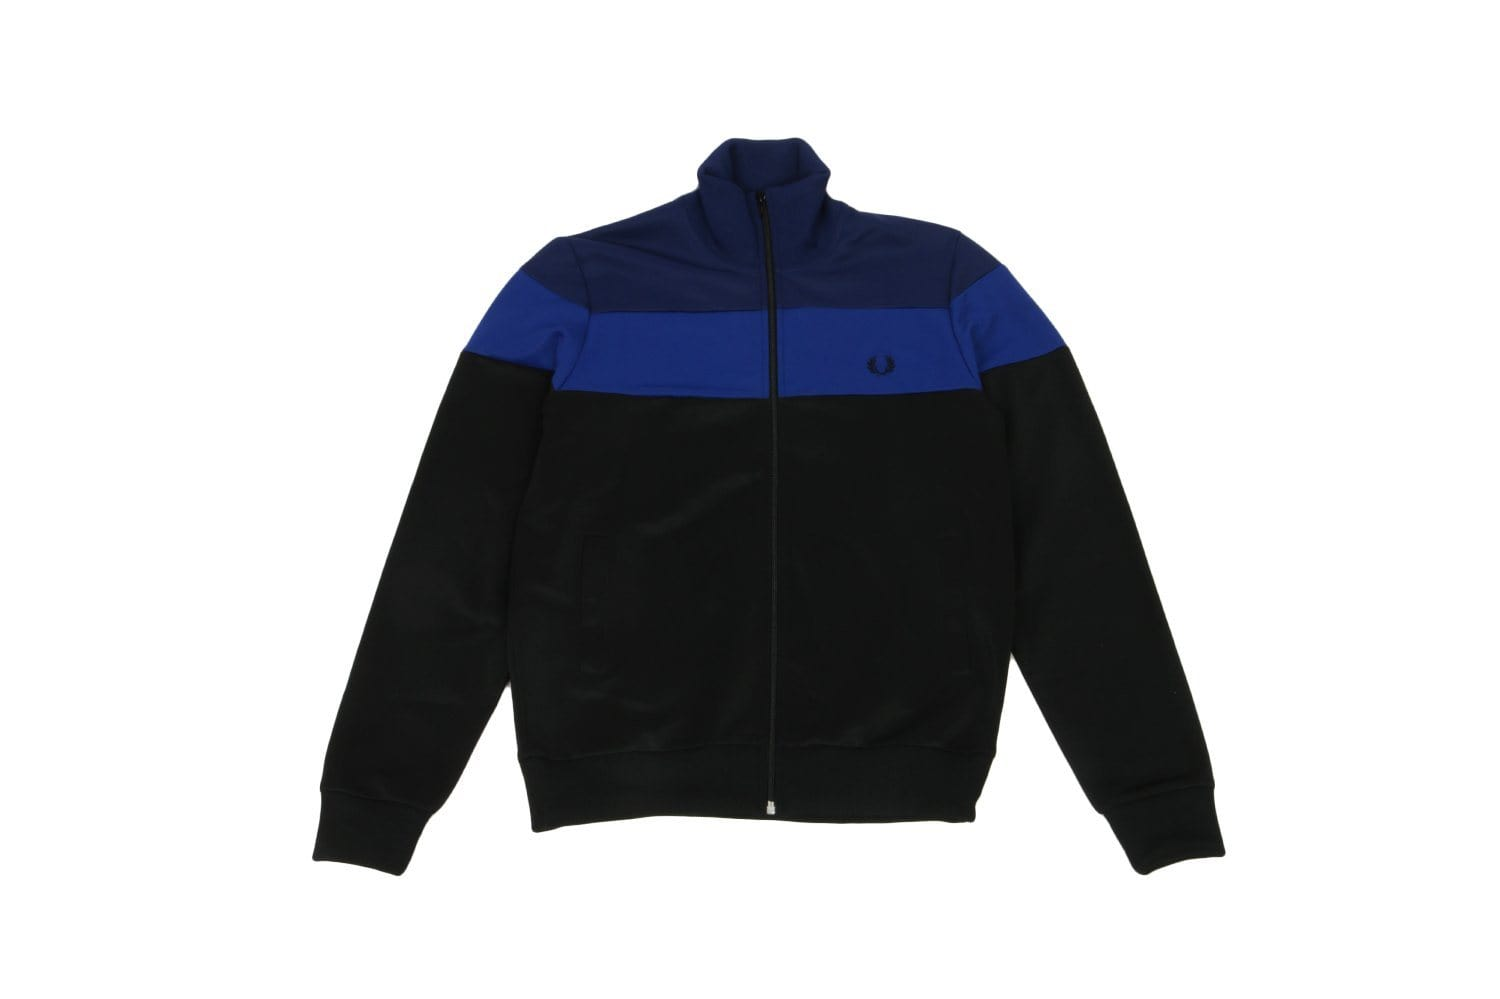 COLOUR BLOCK TRACK JACKET - J7503 MENS SOFTGOODS FRED PERRY